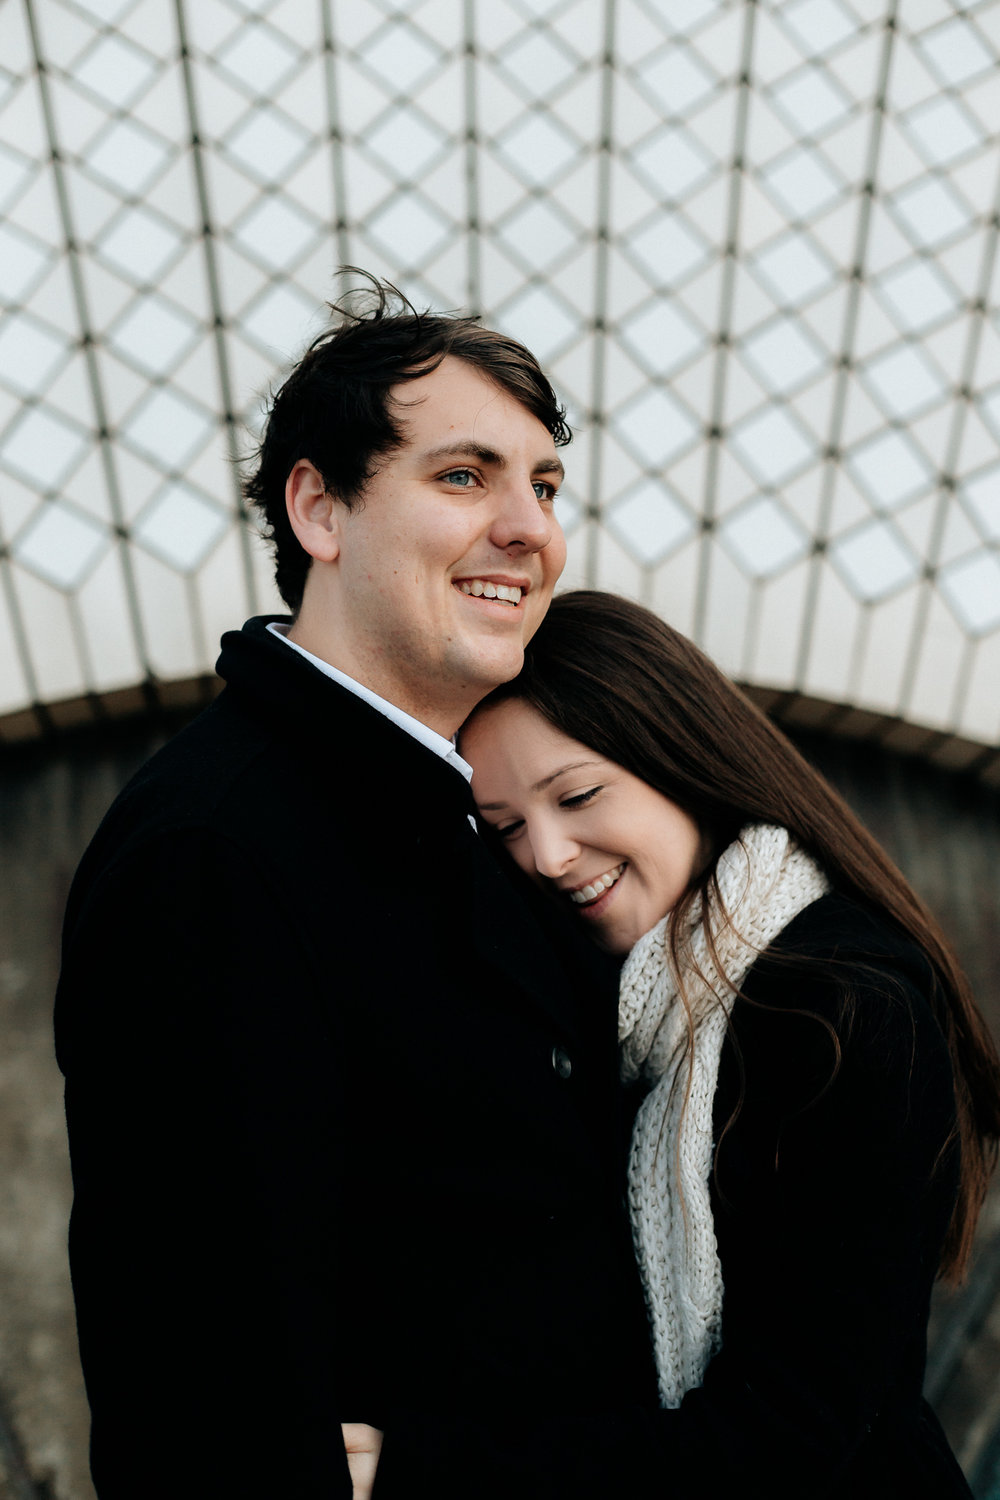 Holly Medway Photography_Winter Wedding_Blake and Kate_Sydney_Engagement-9.JPG